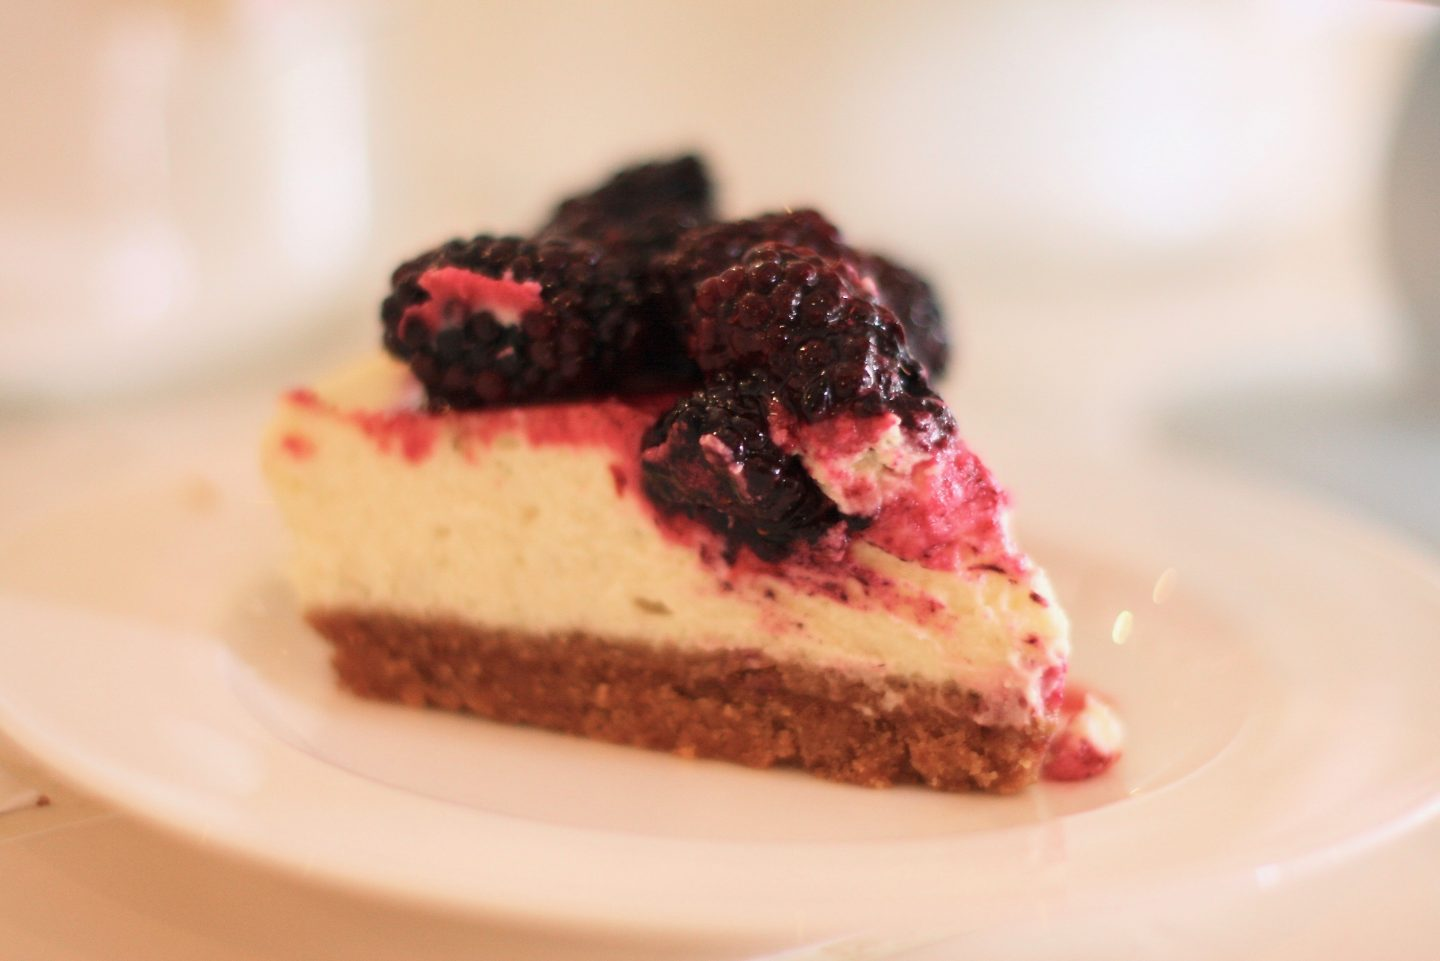 Lime & Blackberry Cheesecake 1 - Cherry Menlove